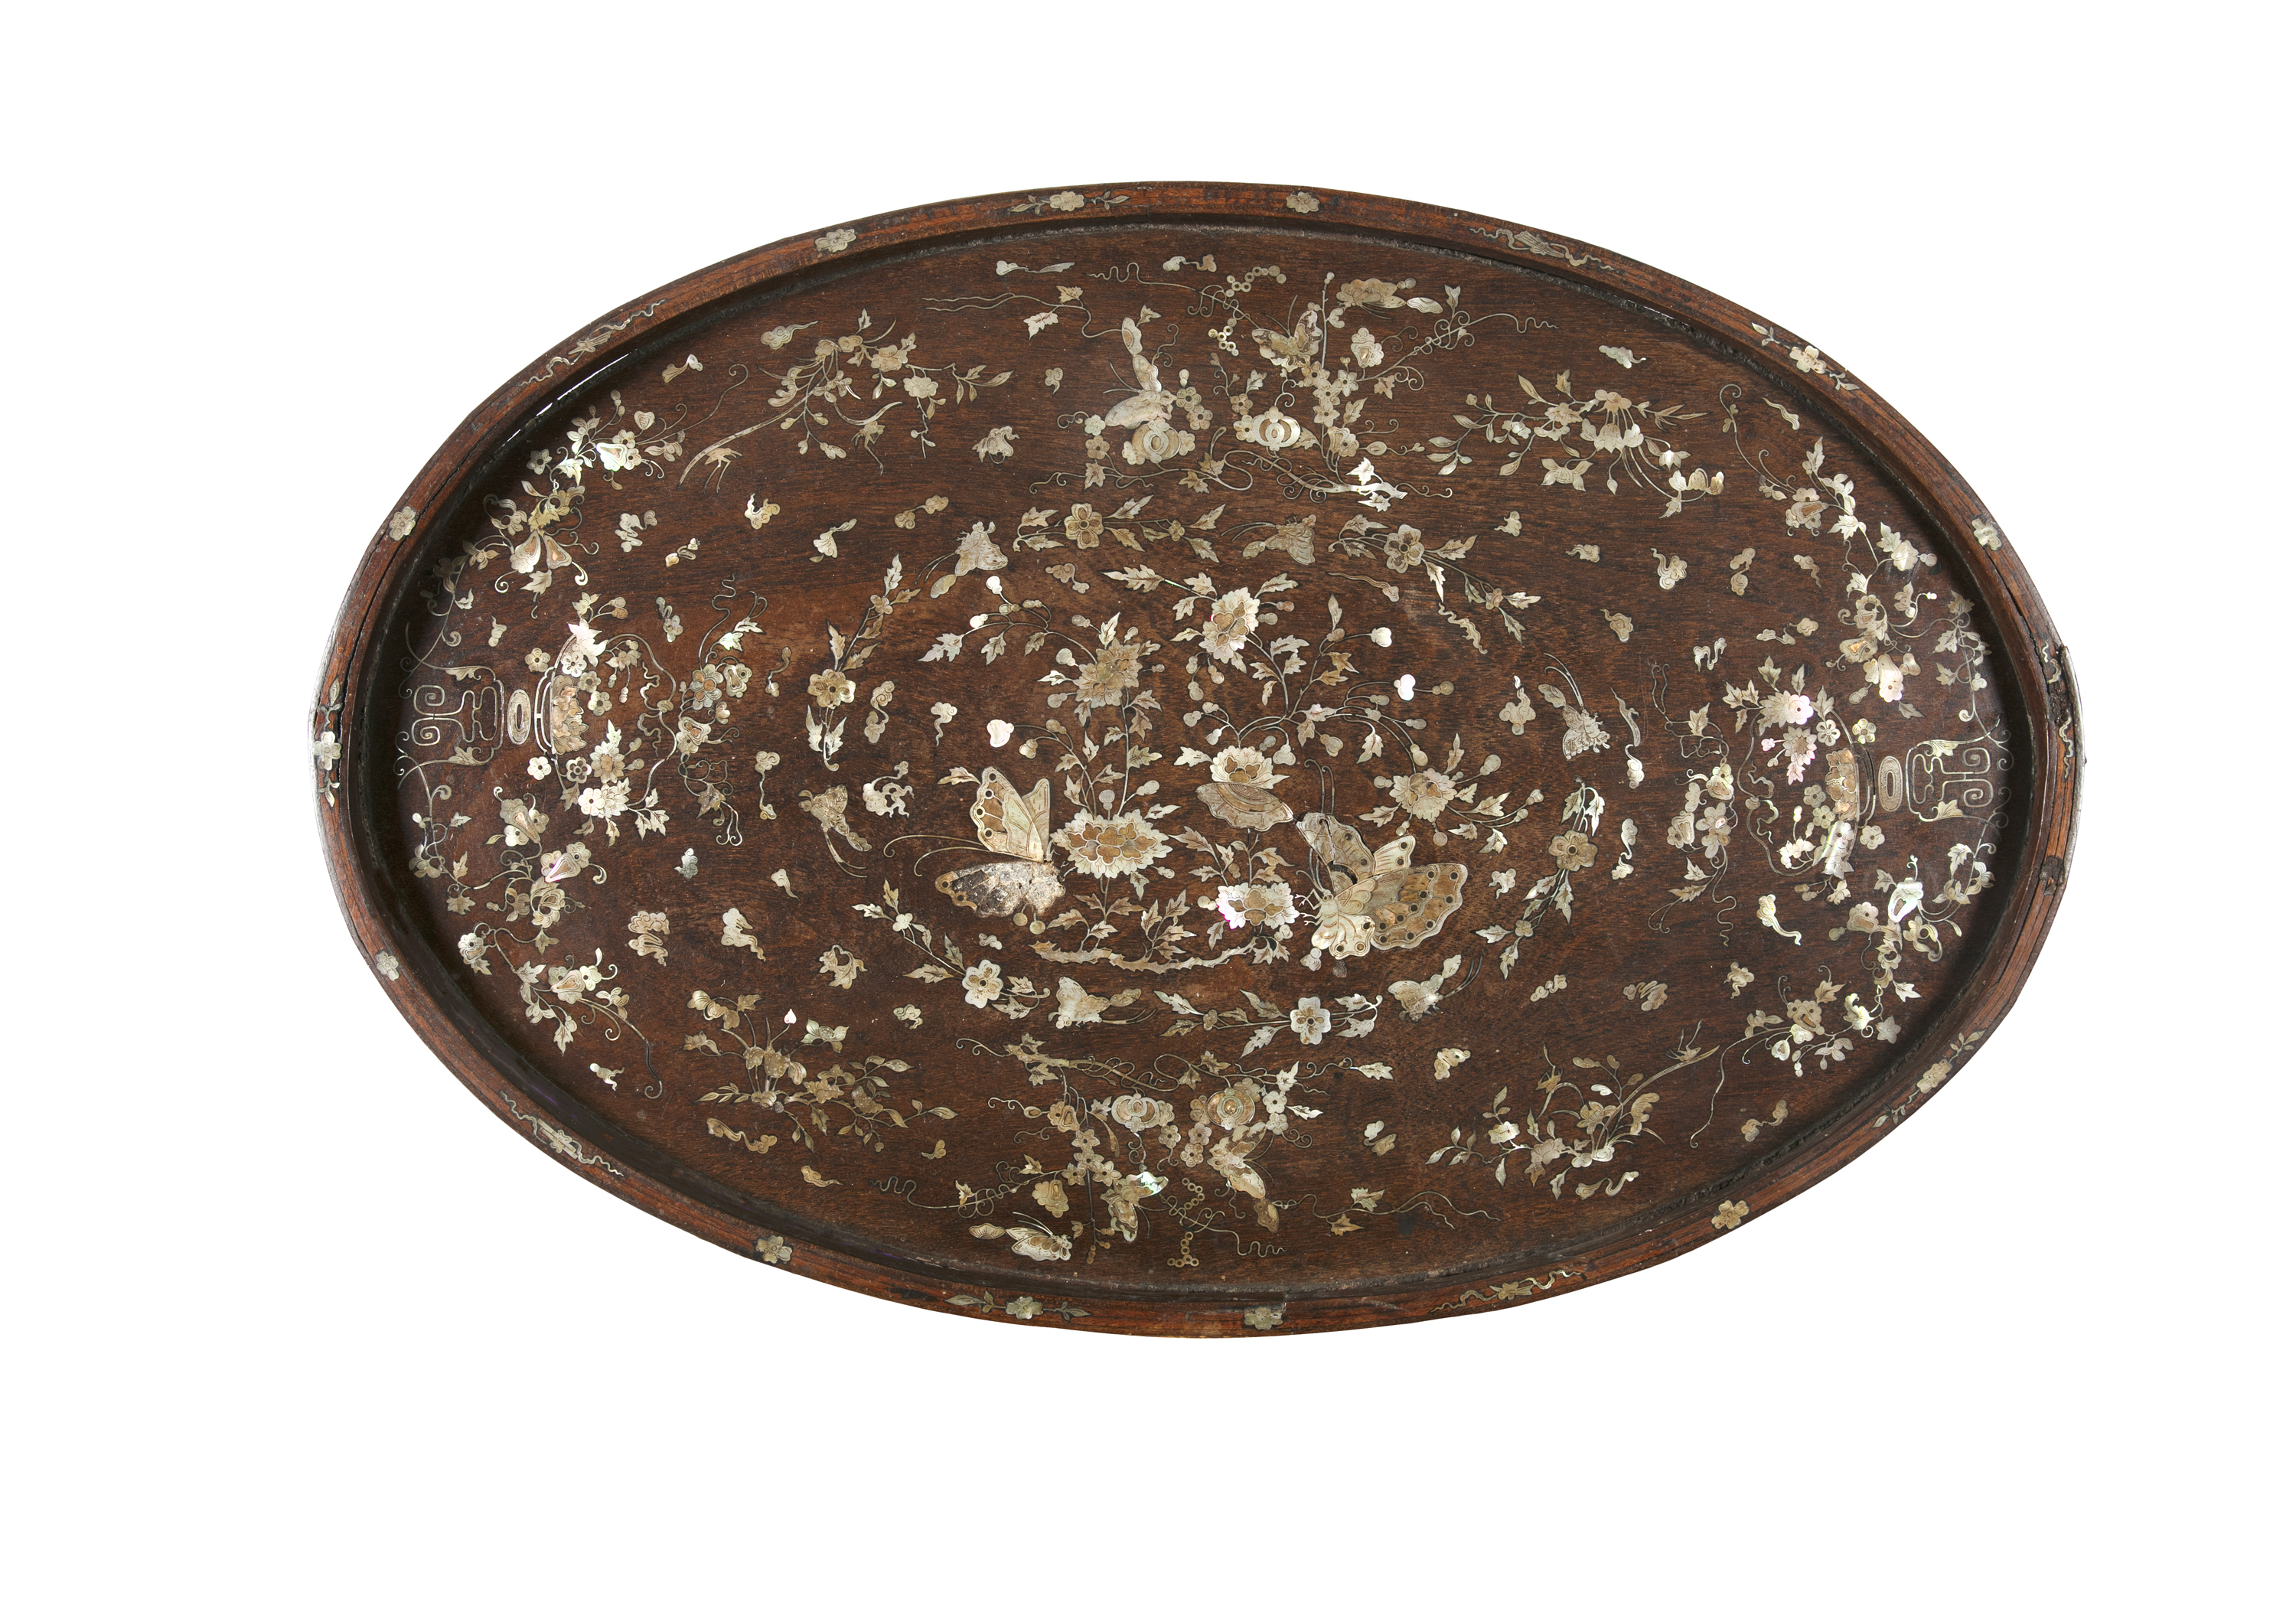 *AN OVATE MOTHER-OF-PEARL INLAID WOODEN MANDARIN TRAY Vietnam, Tonkin, Nam Dinh, Nguyen Dynasty,